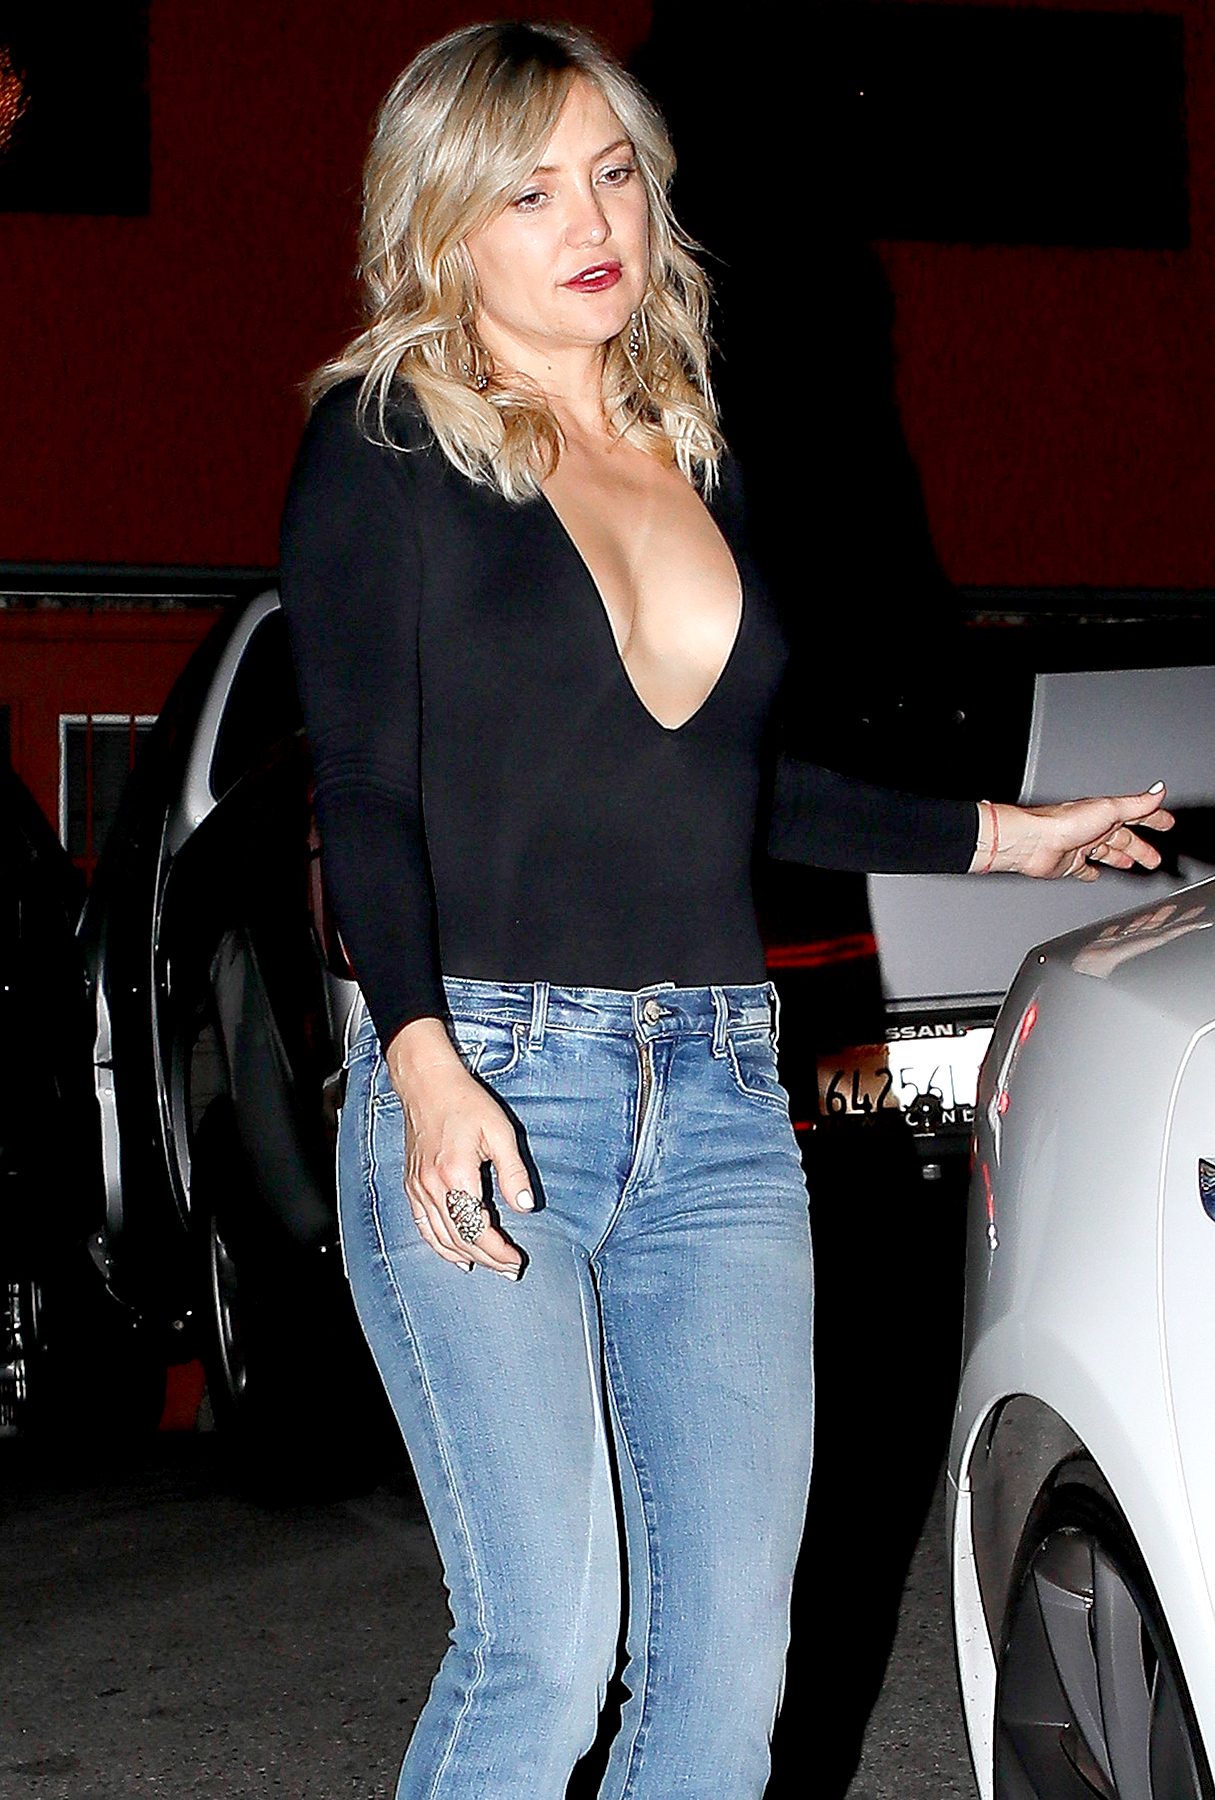 Kate Hudson is spotted leaving Picca Peruvian Cantina after celebrating her birthday with close friends and family.